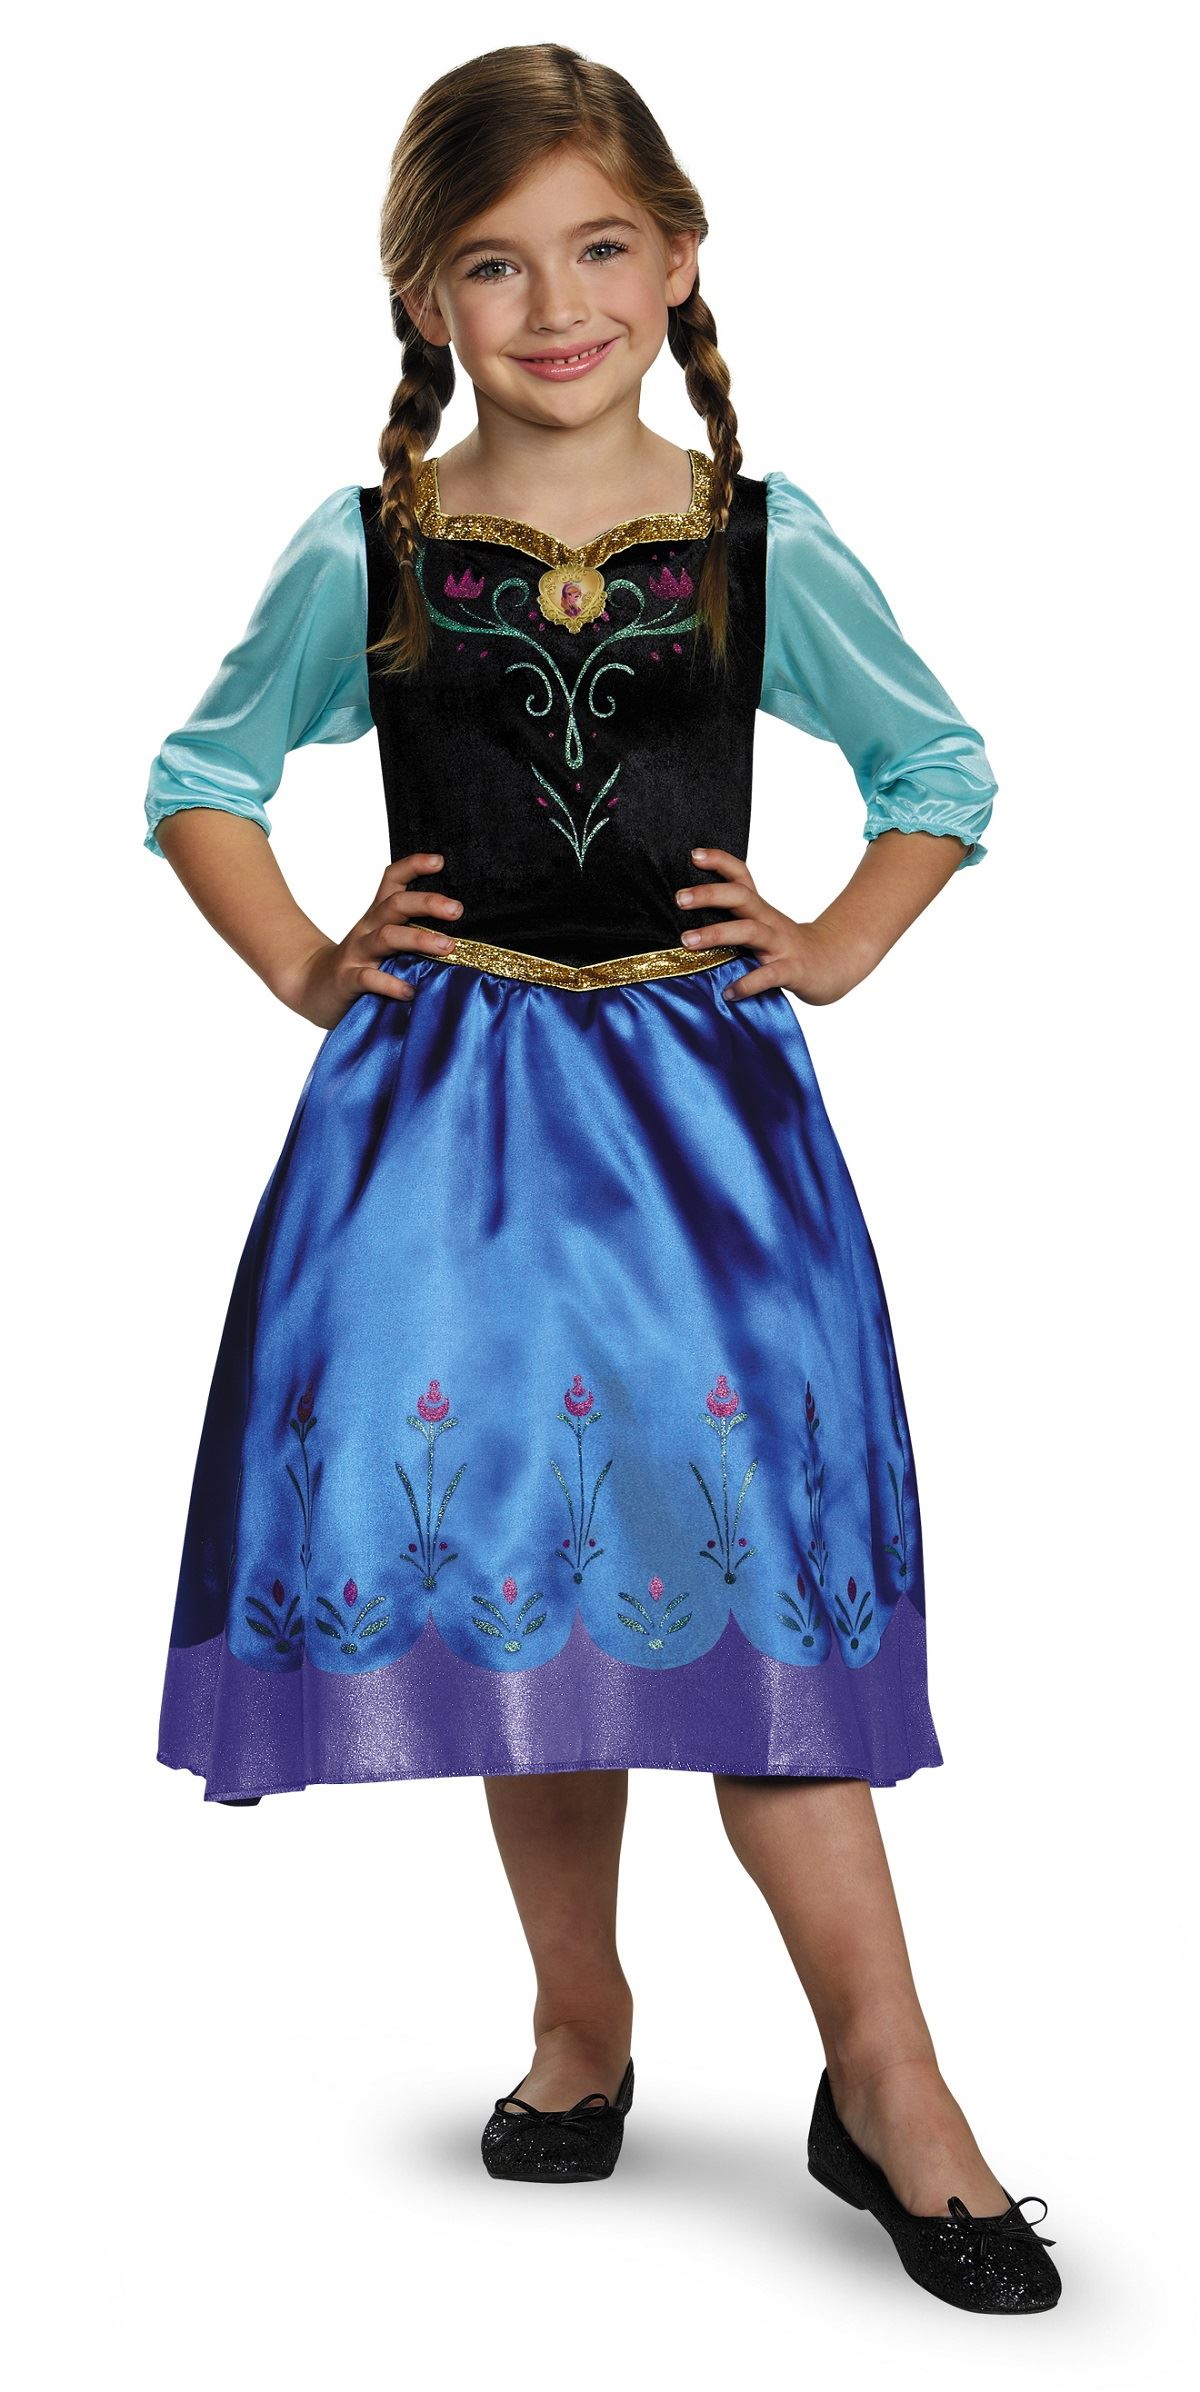 Kids Anna Disney Princess Girls Frozen Costume | $25.99 | The ...